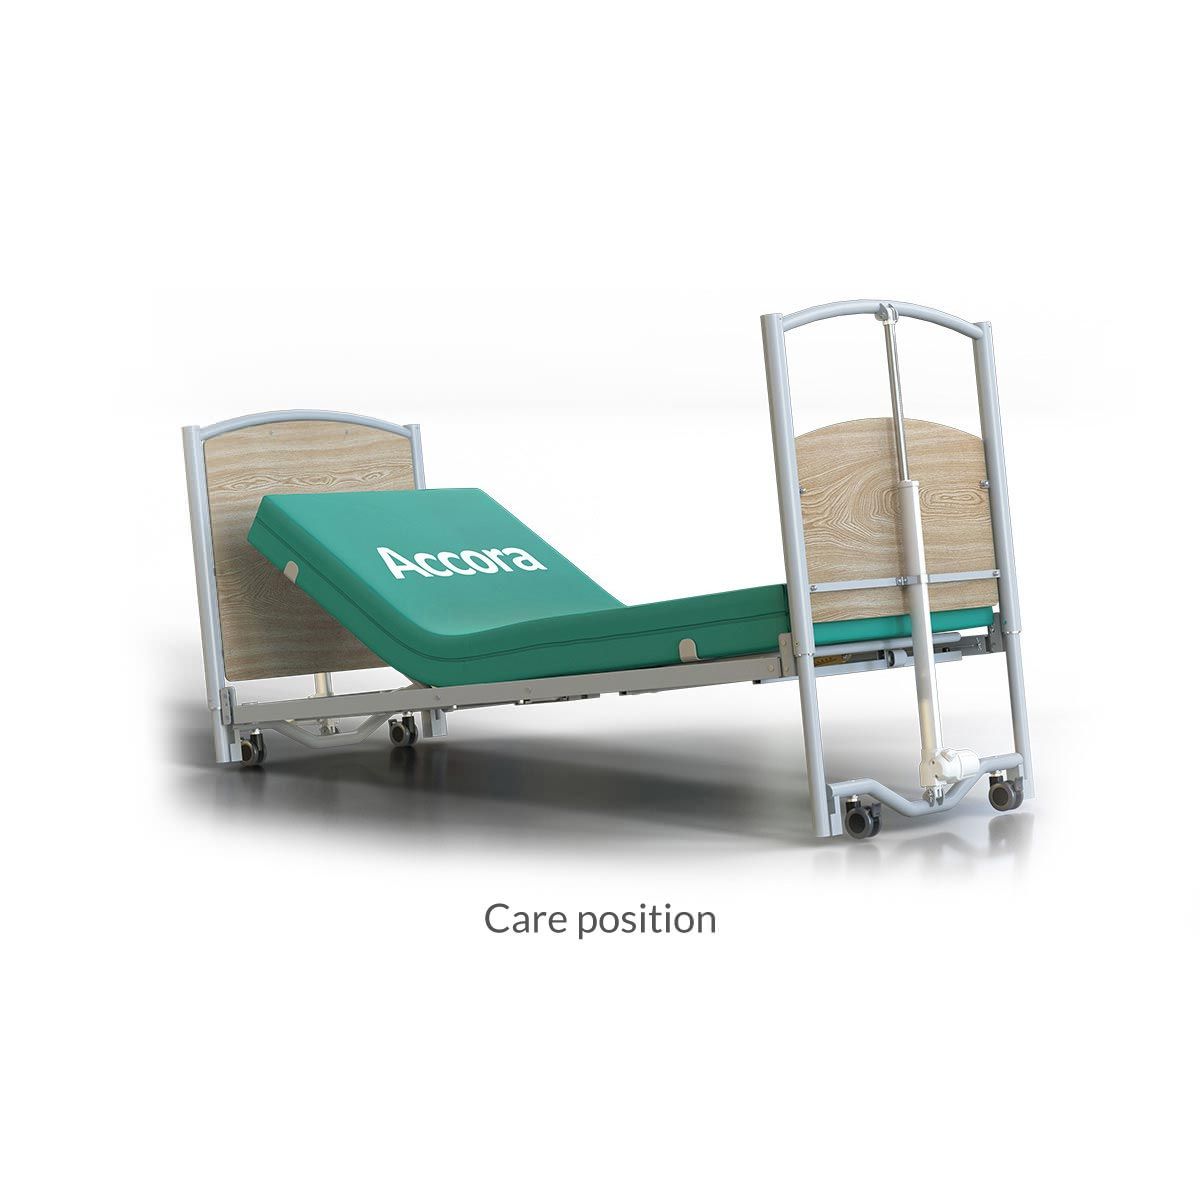 Accora FloorBed 1 - care position